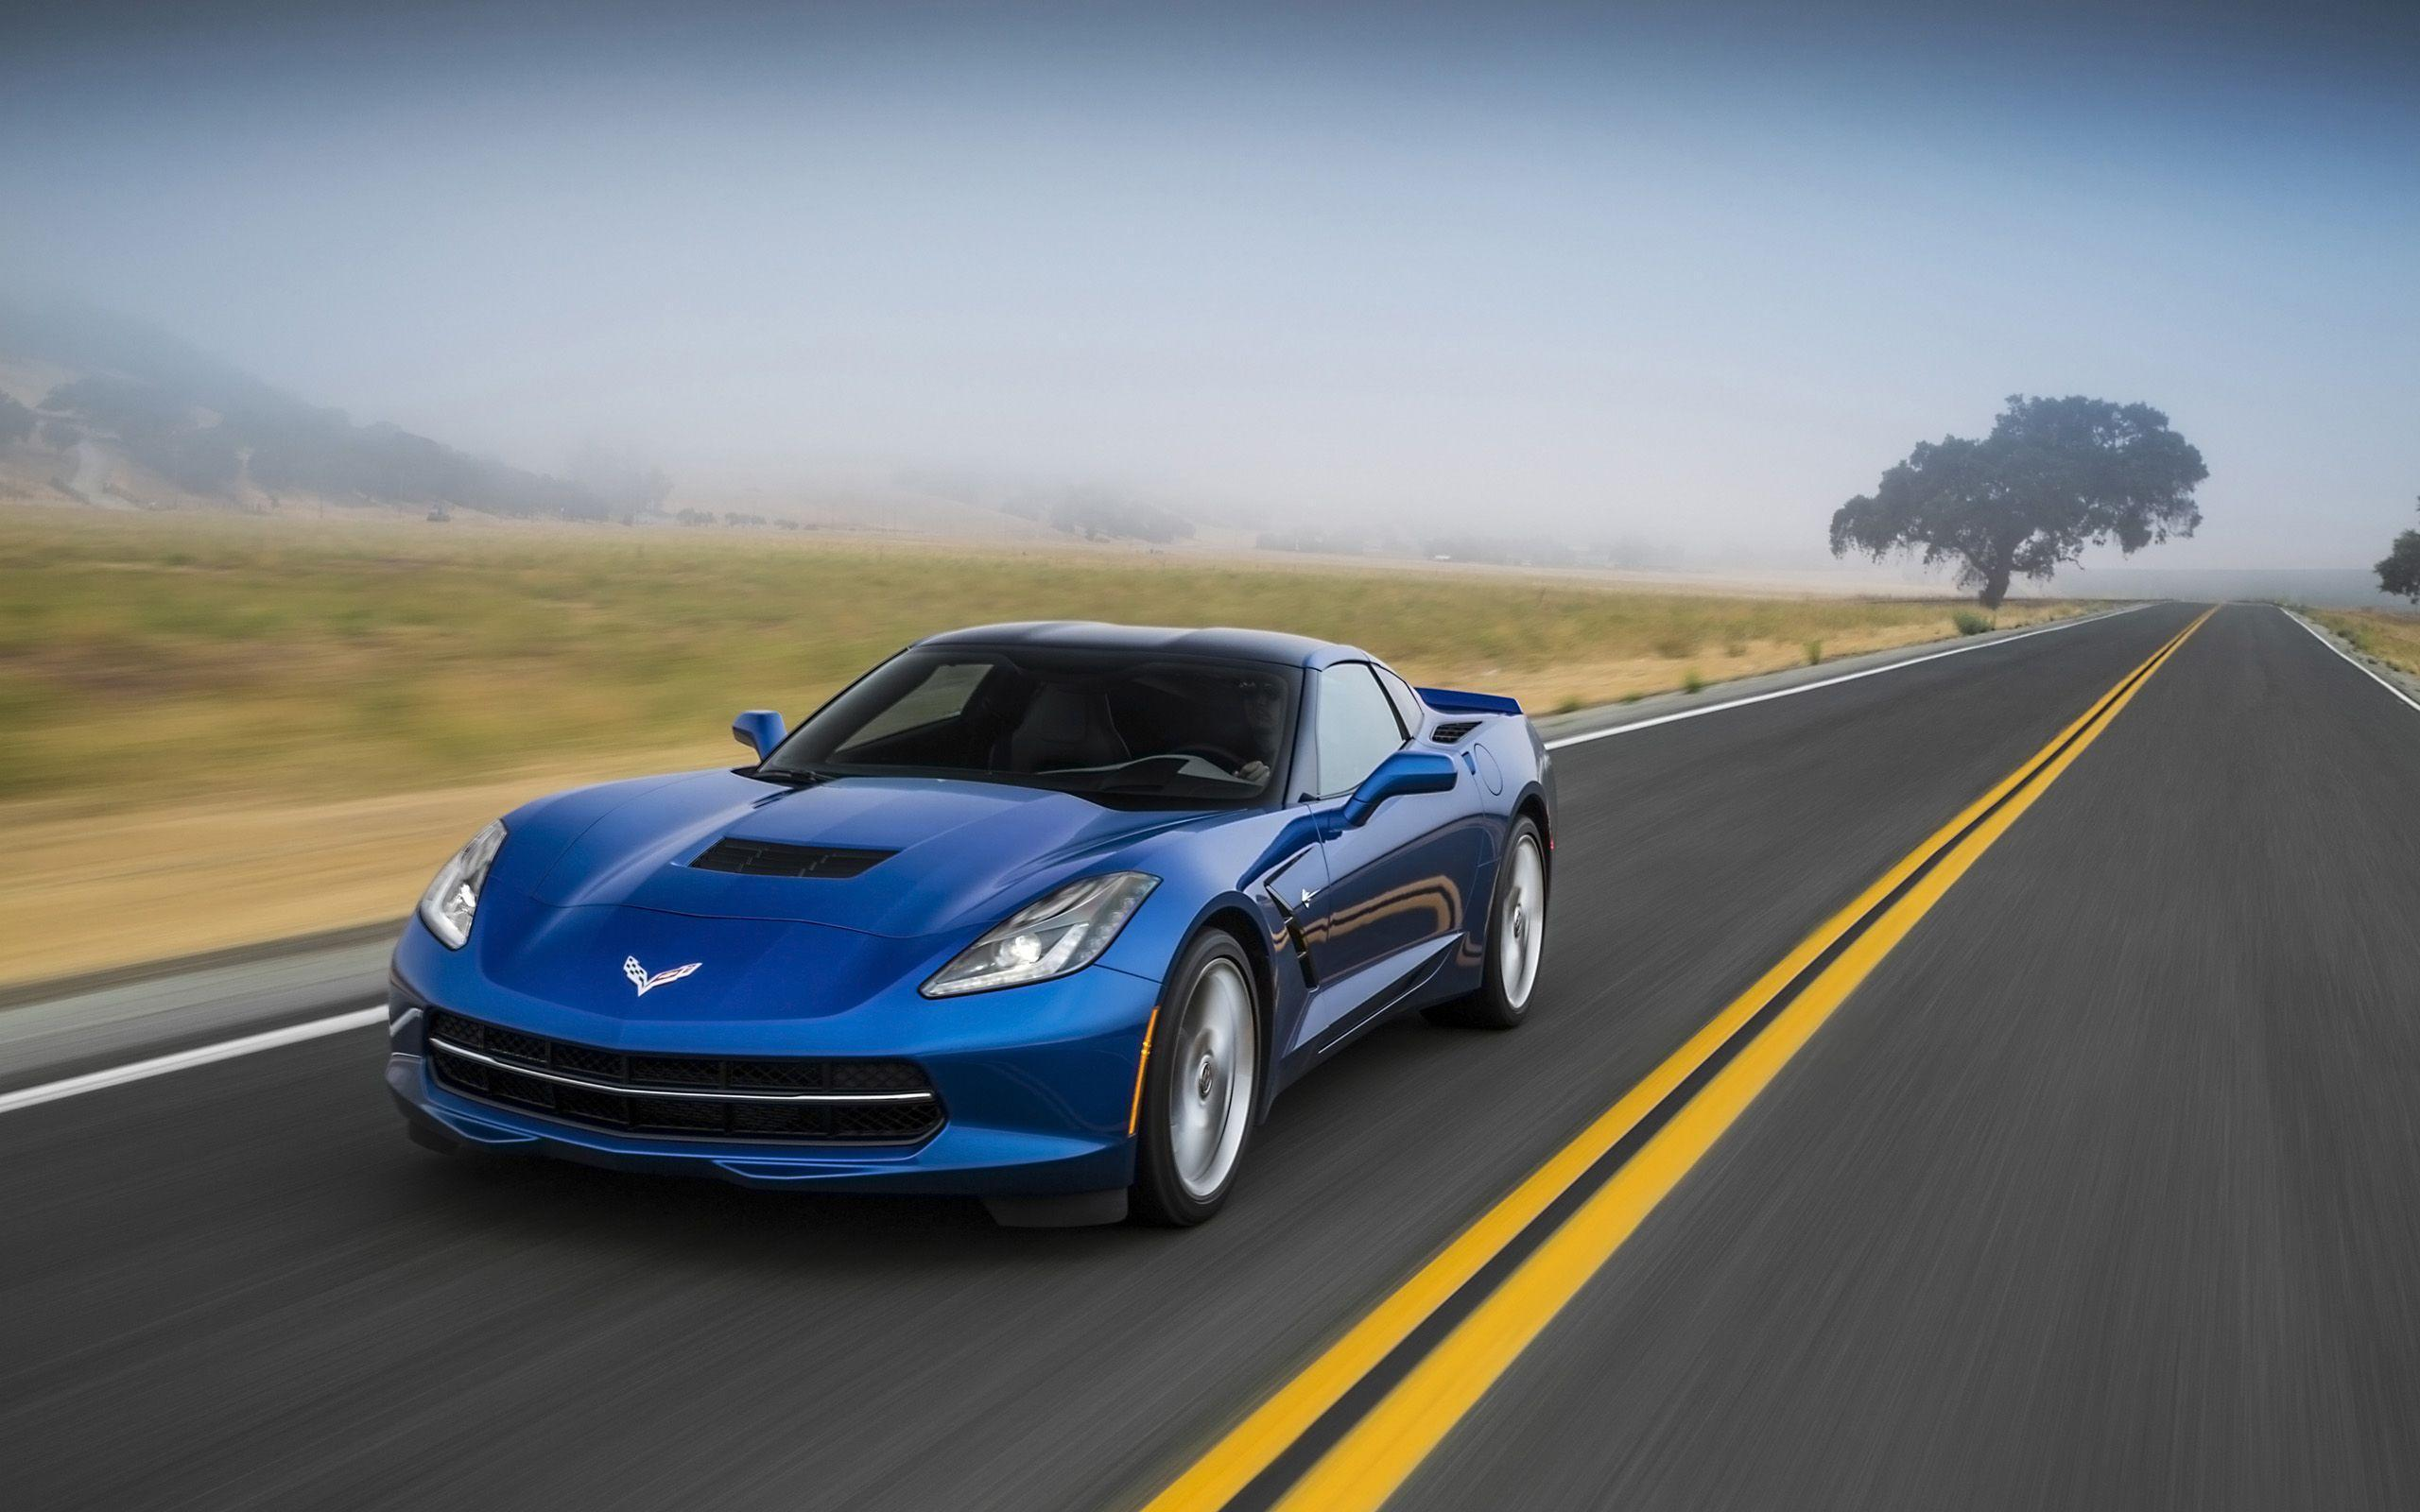 corvette wallpaper hd - photo #26